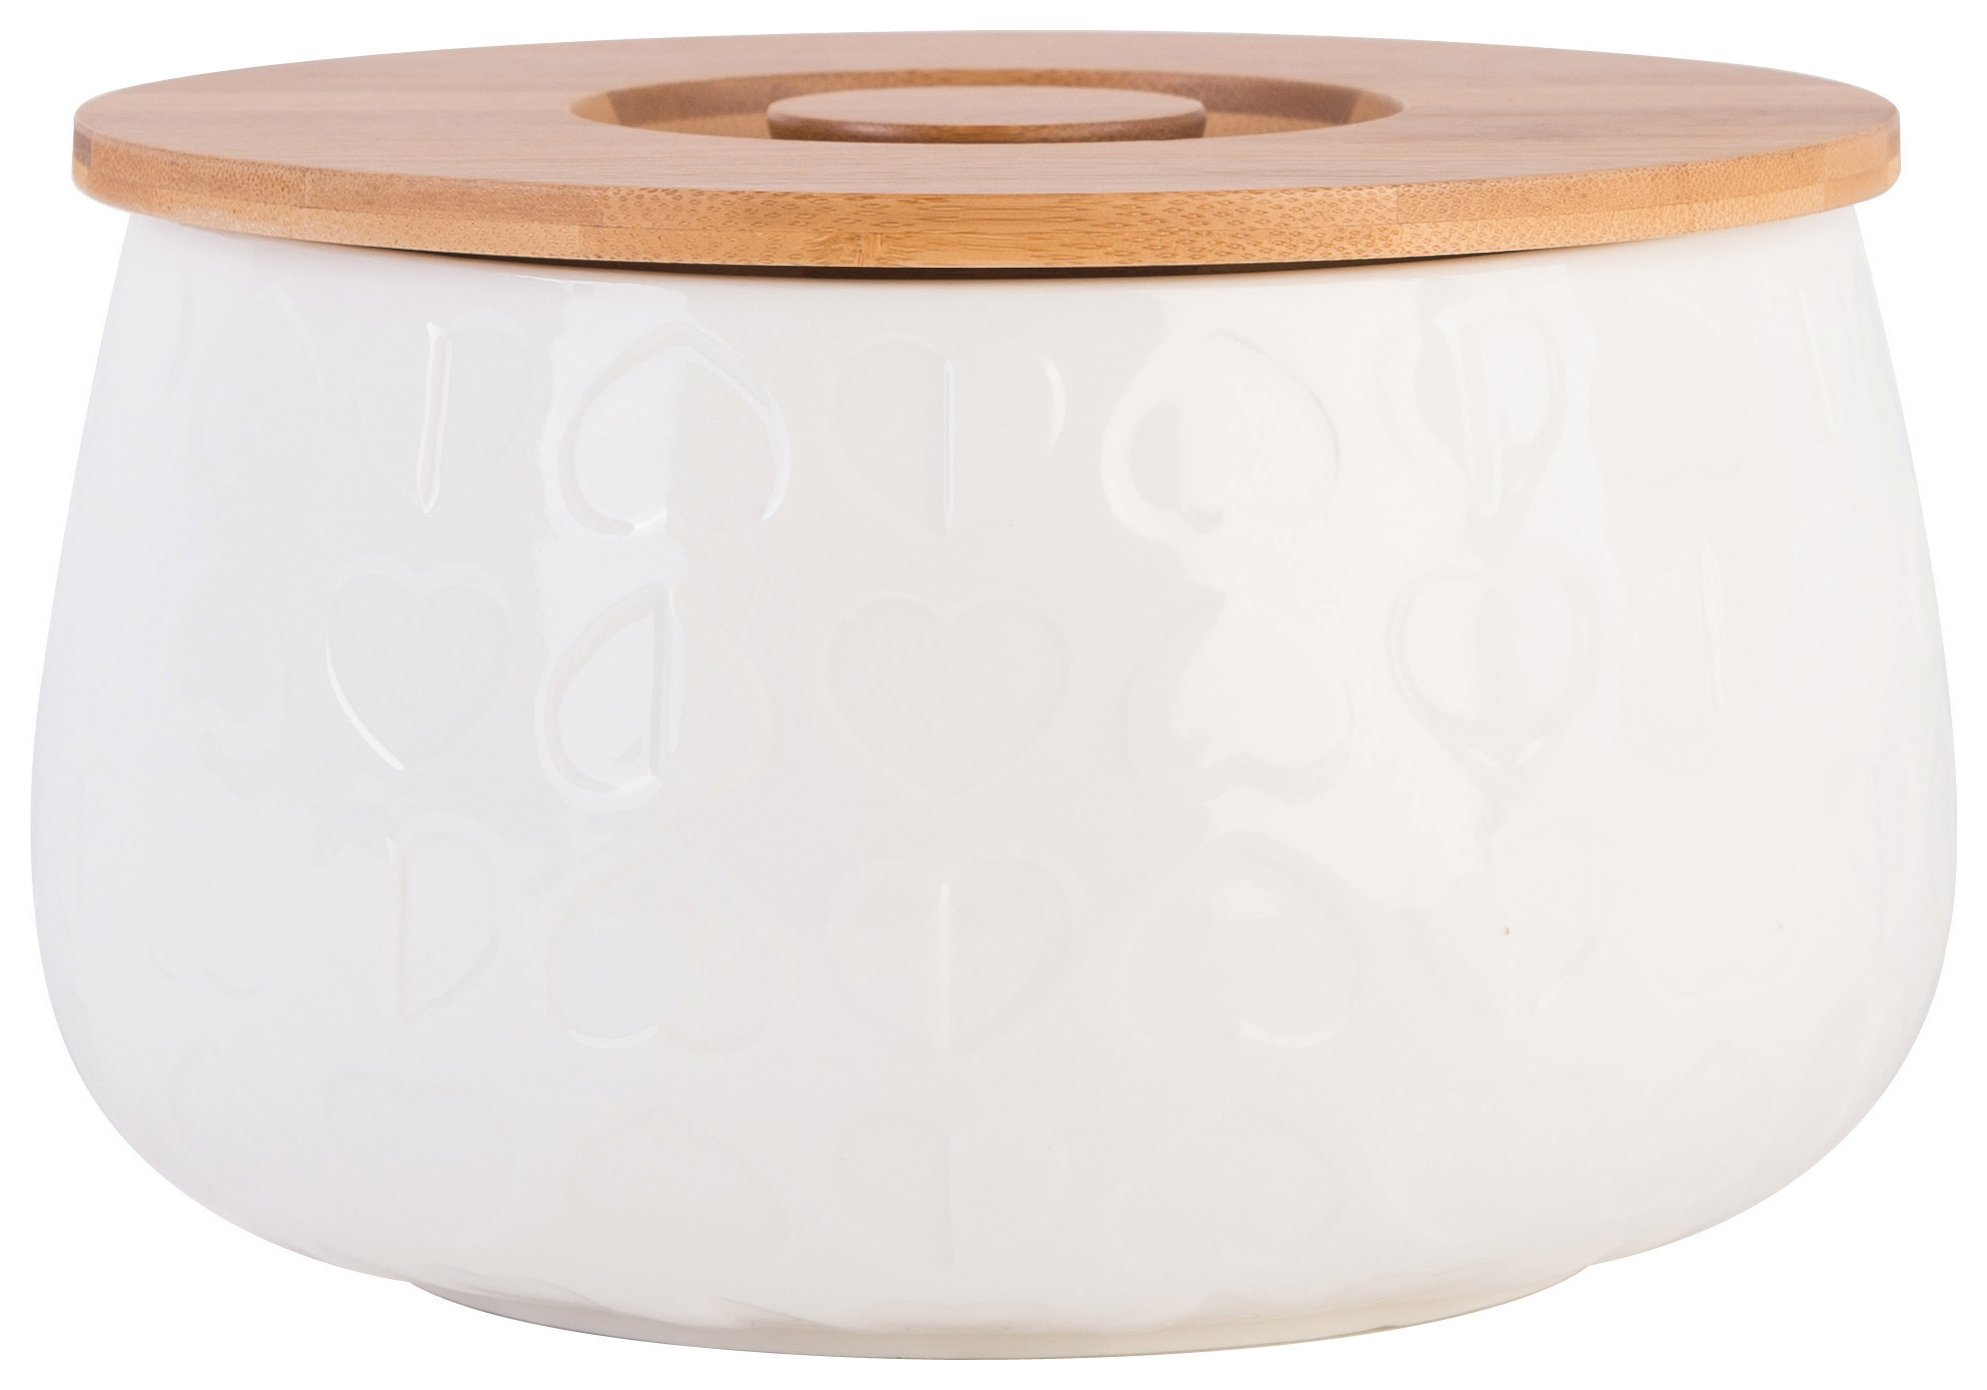 Image of Beau and Elliot Confetti - White Biscuit Jar